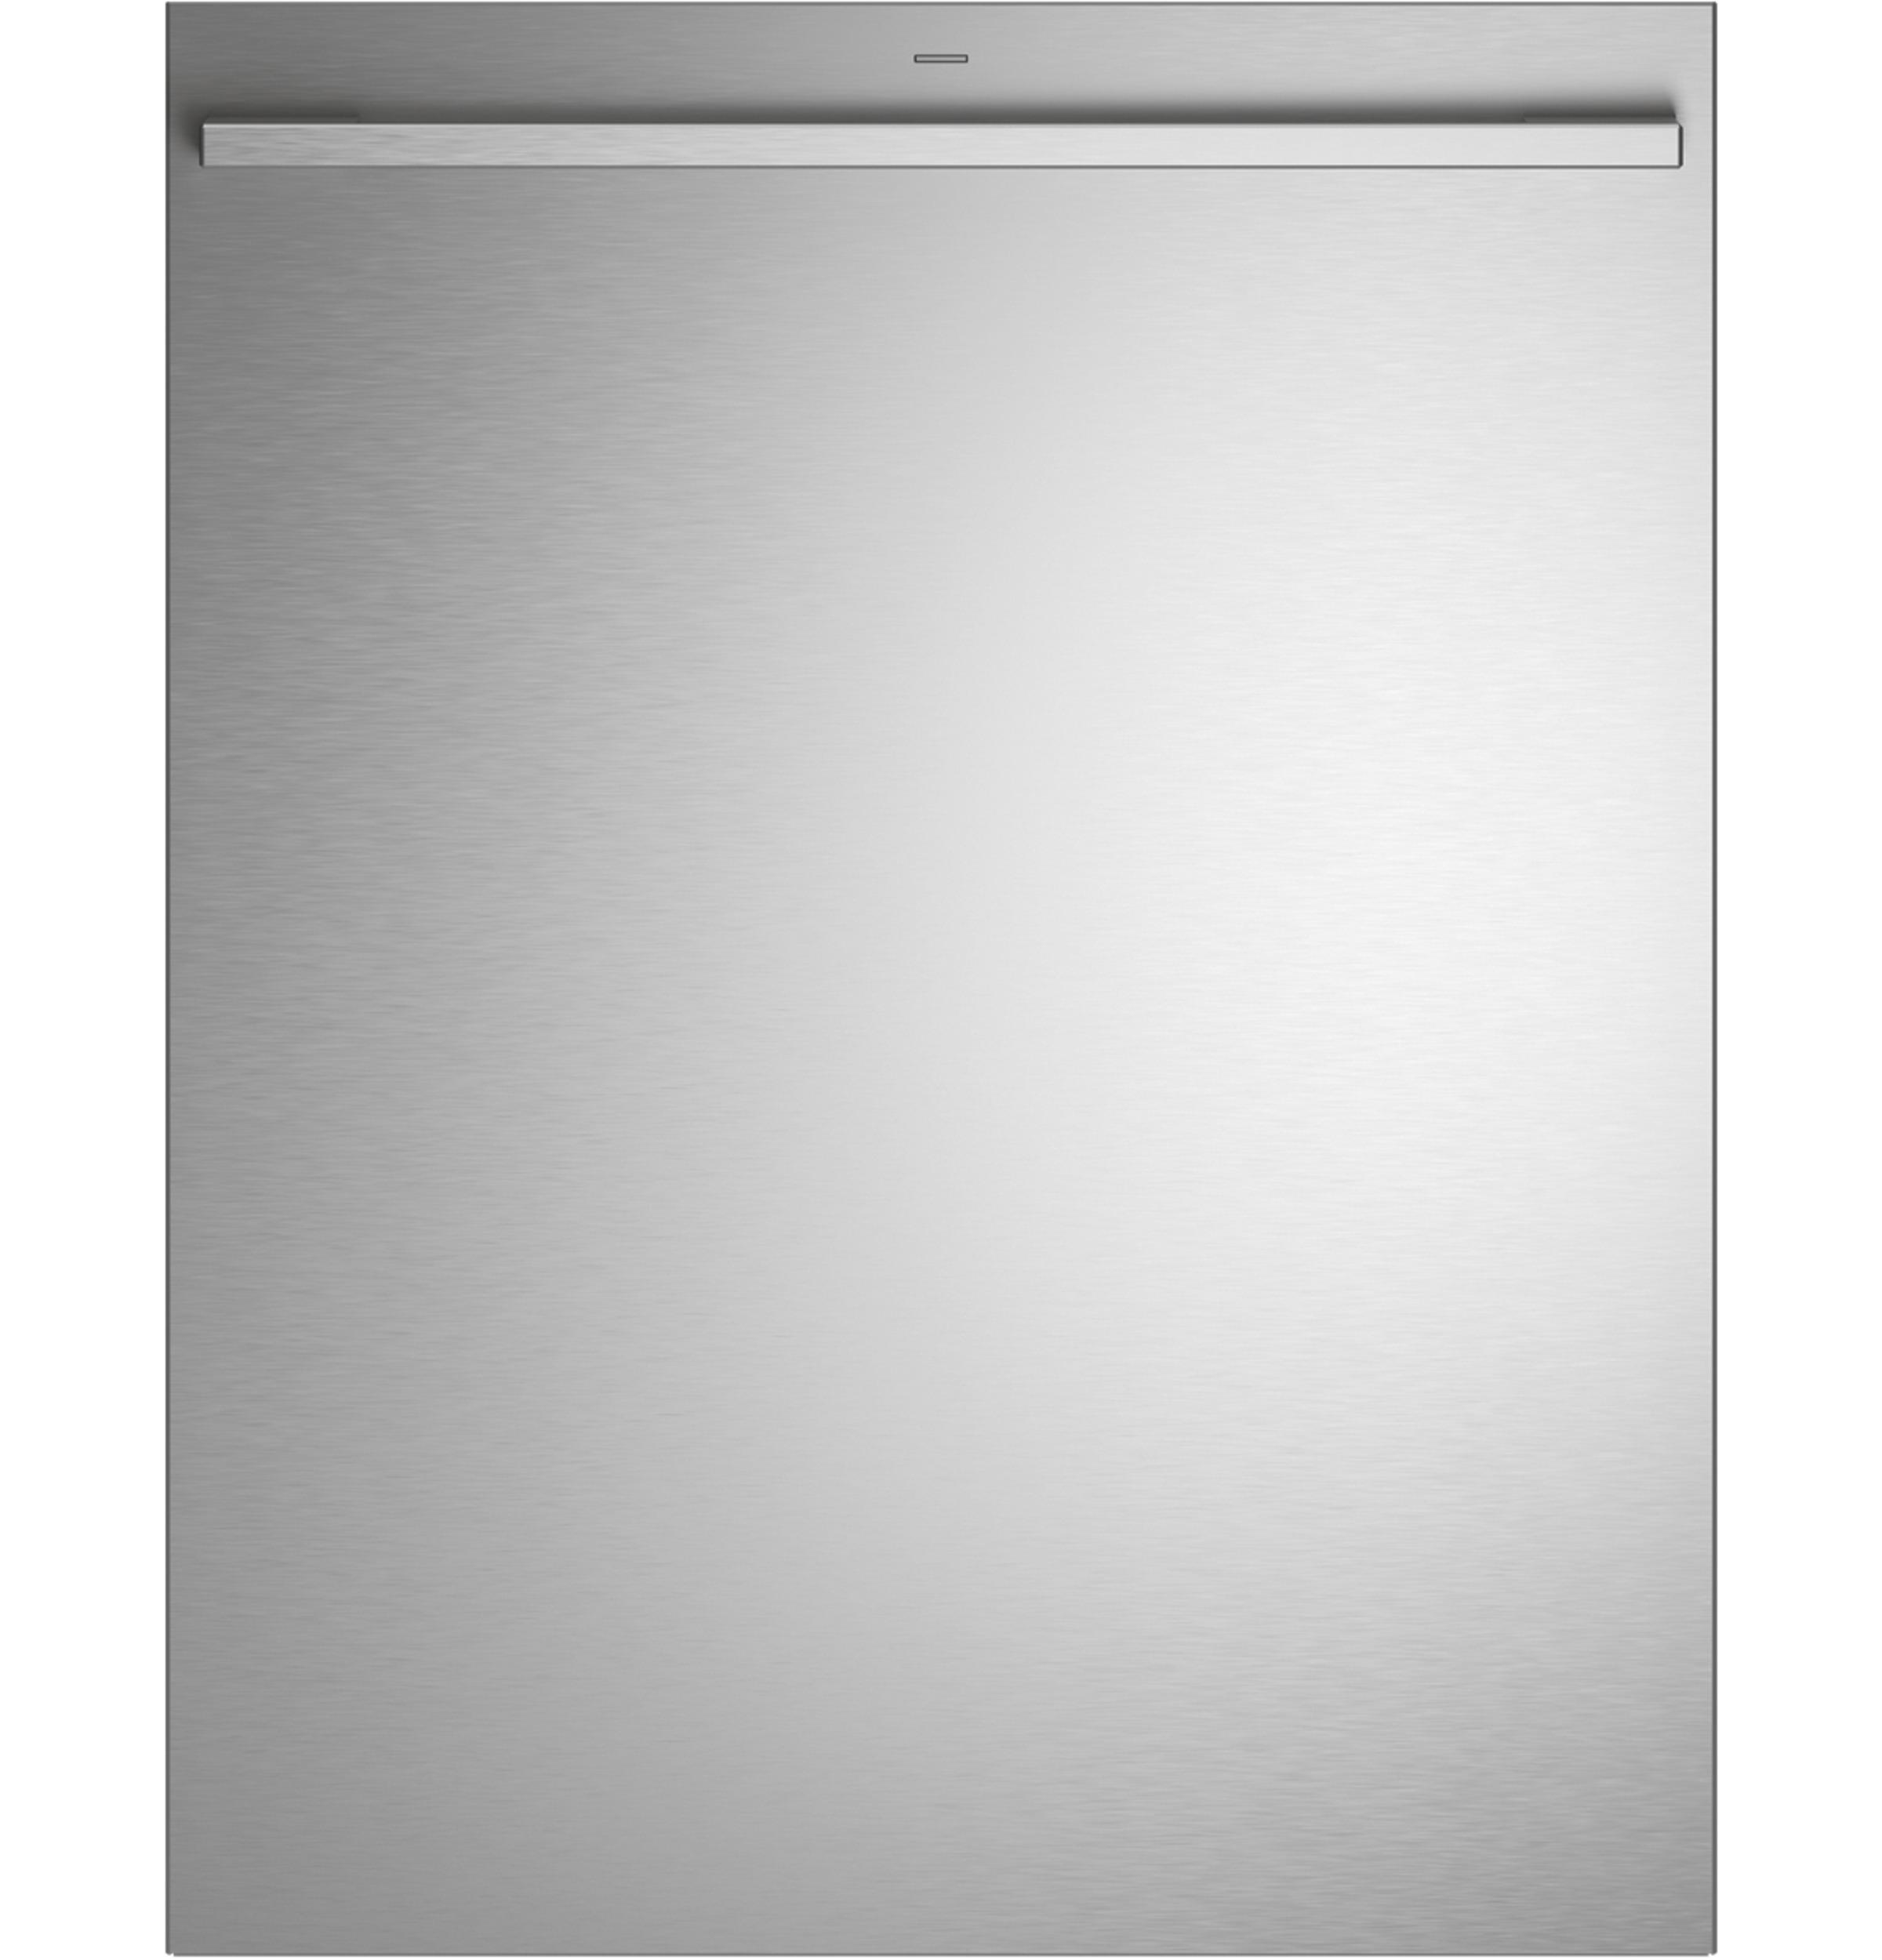 Monogram Dishwasher ZDT925SSNSS